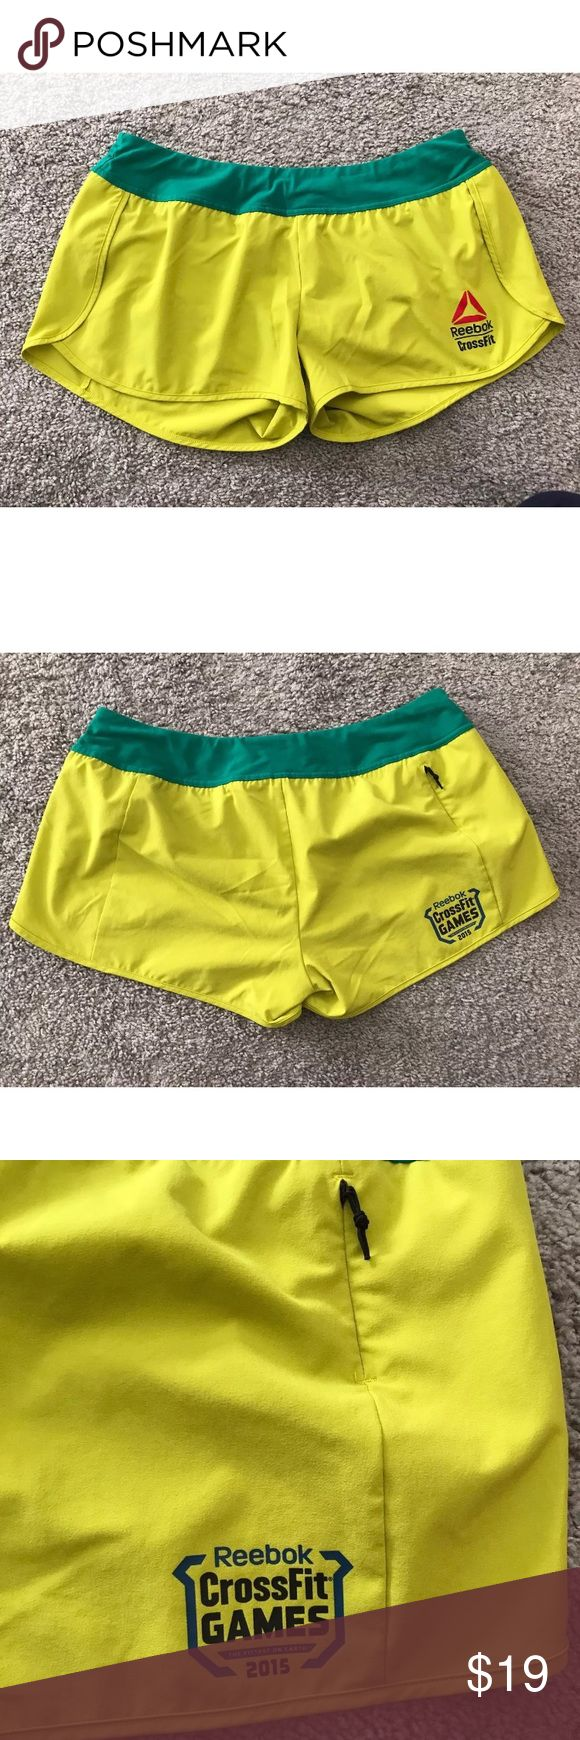 Reebox crossfit games  the fittest on earth short Reebox crossfit games 2015 the fittest on earth yellow green women's shorts in size large. Has a small back pocket. Recycled polyester/Spandex. In great preloved condition. Reebok Shorts